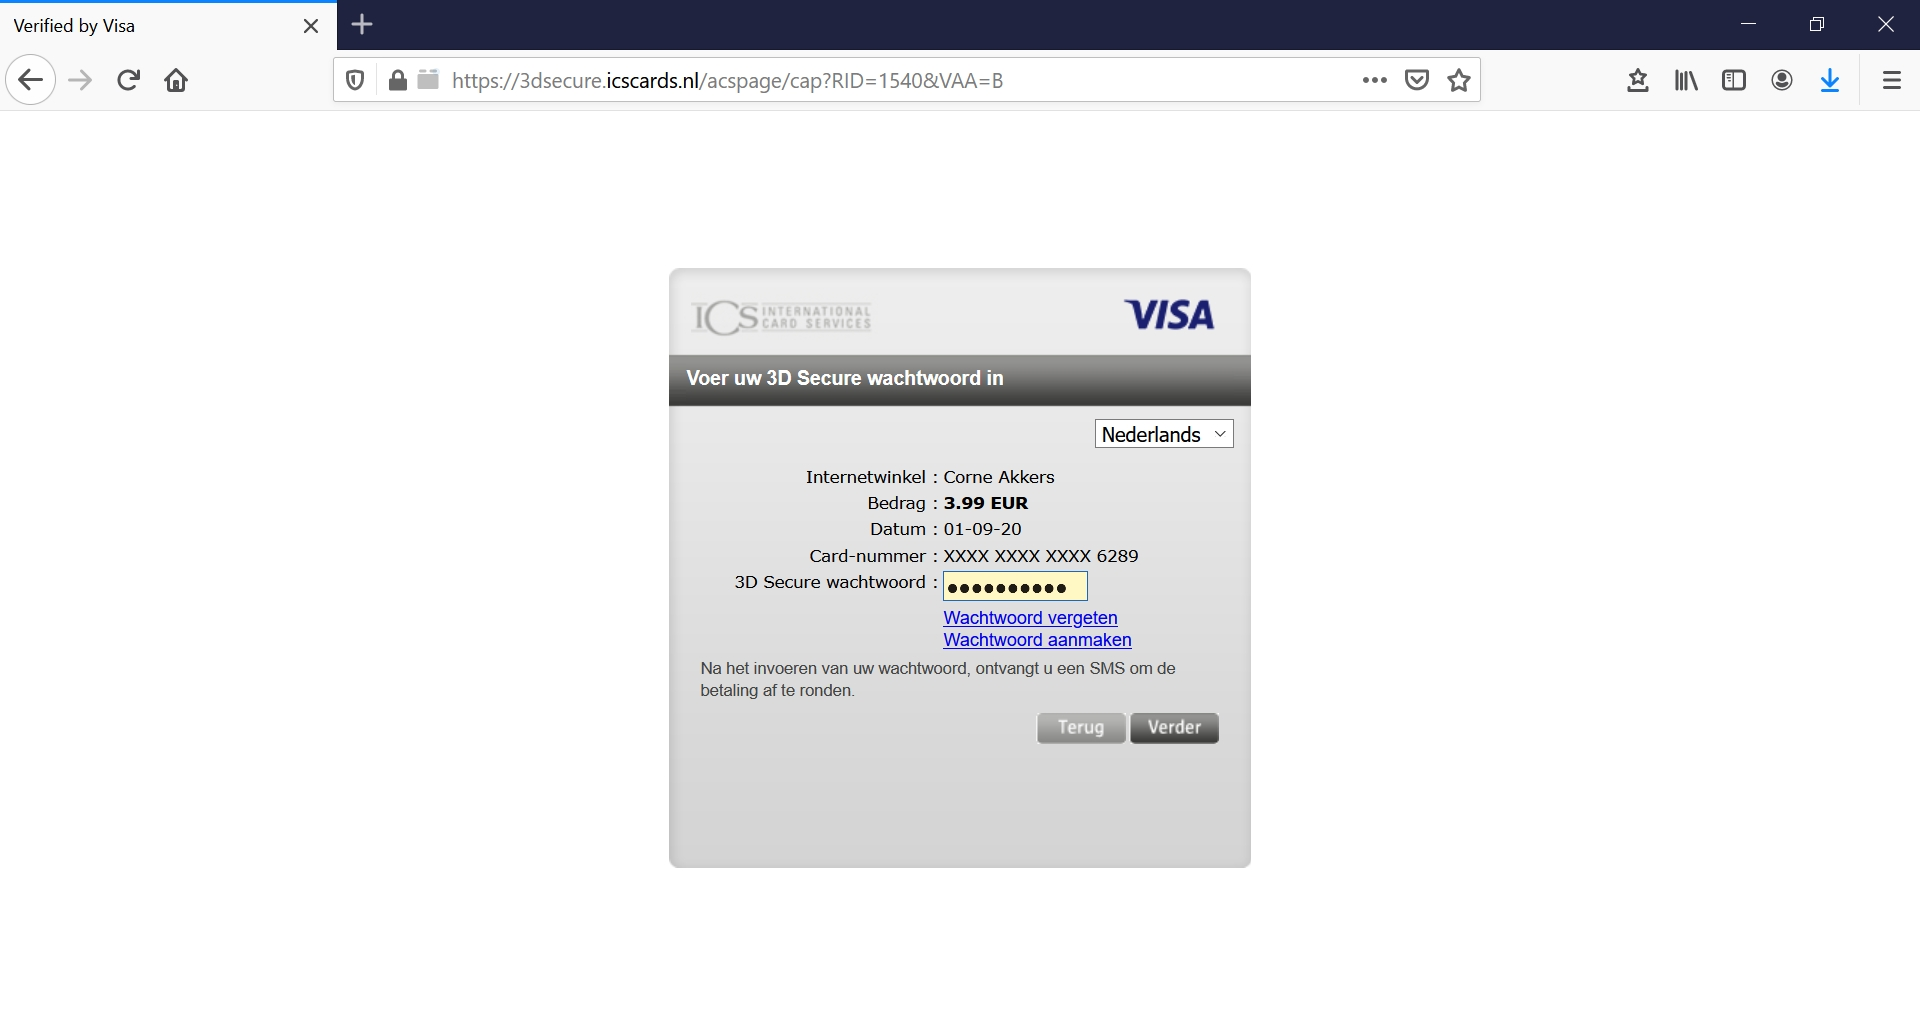 test payment screen shot 5